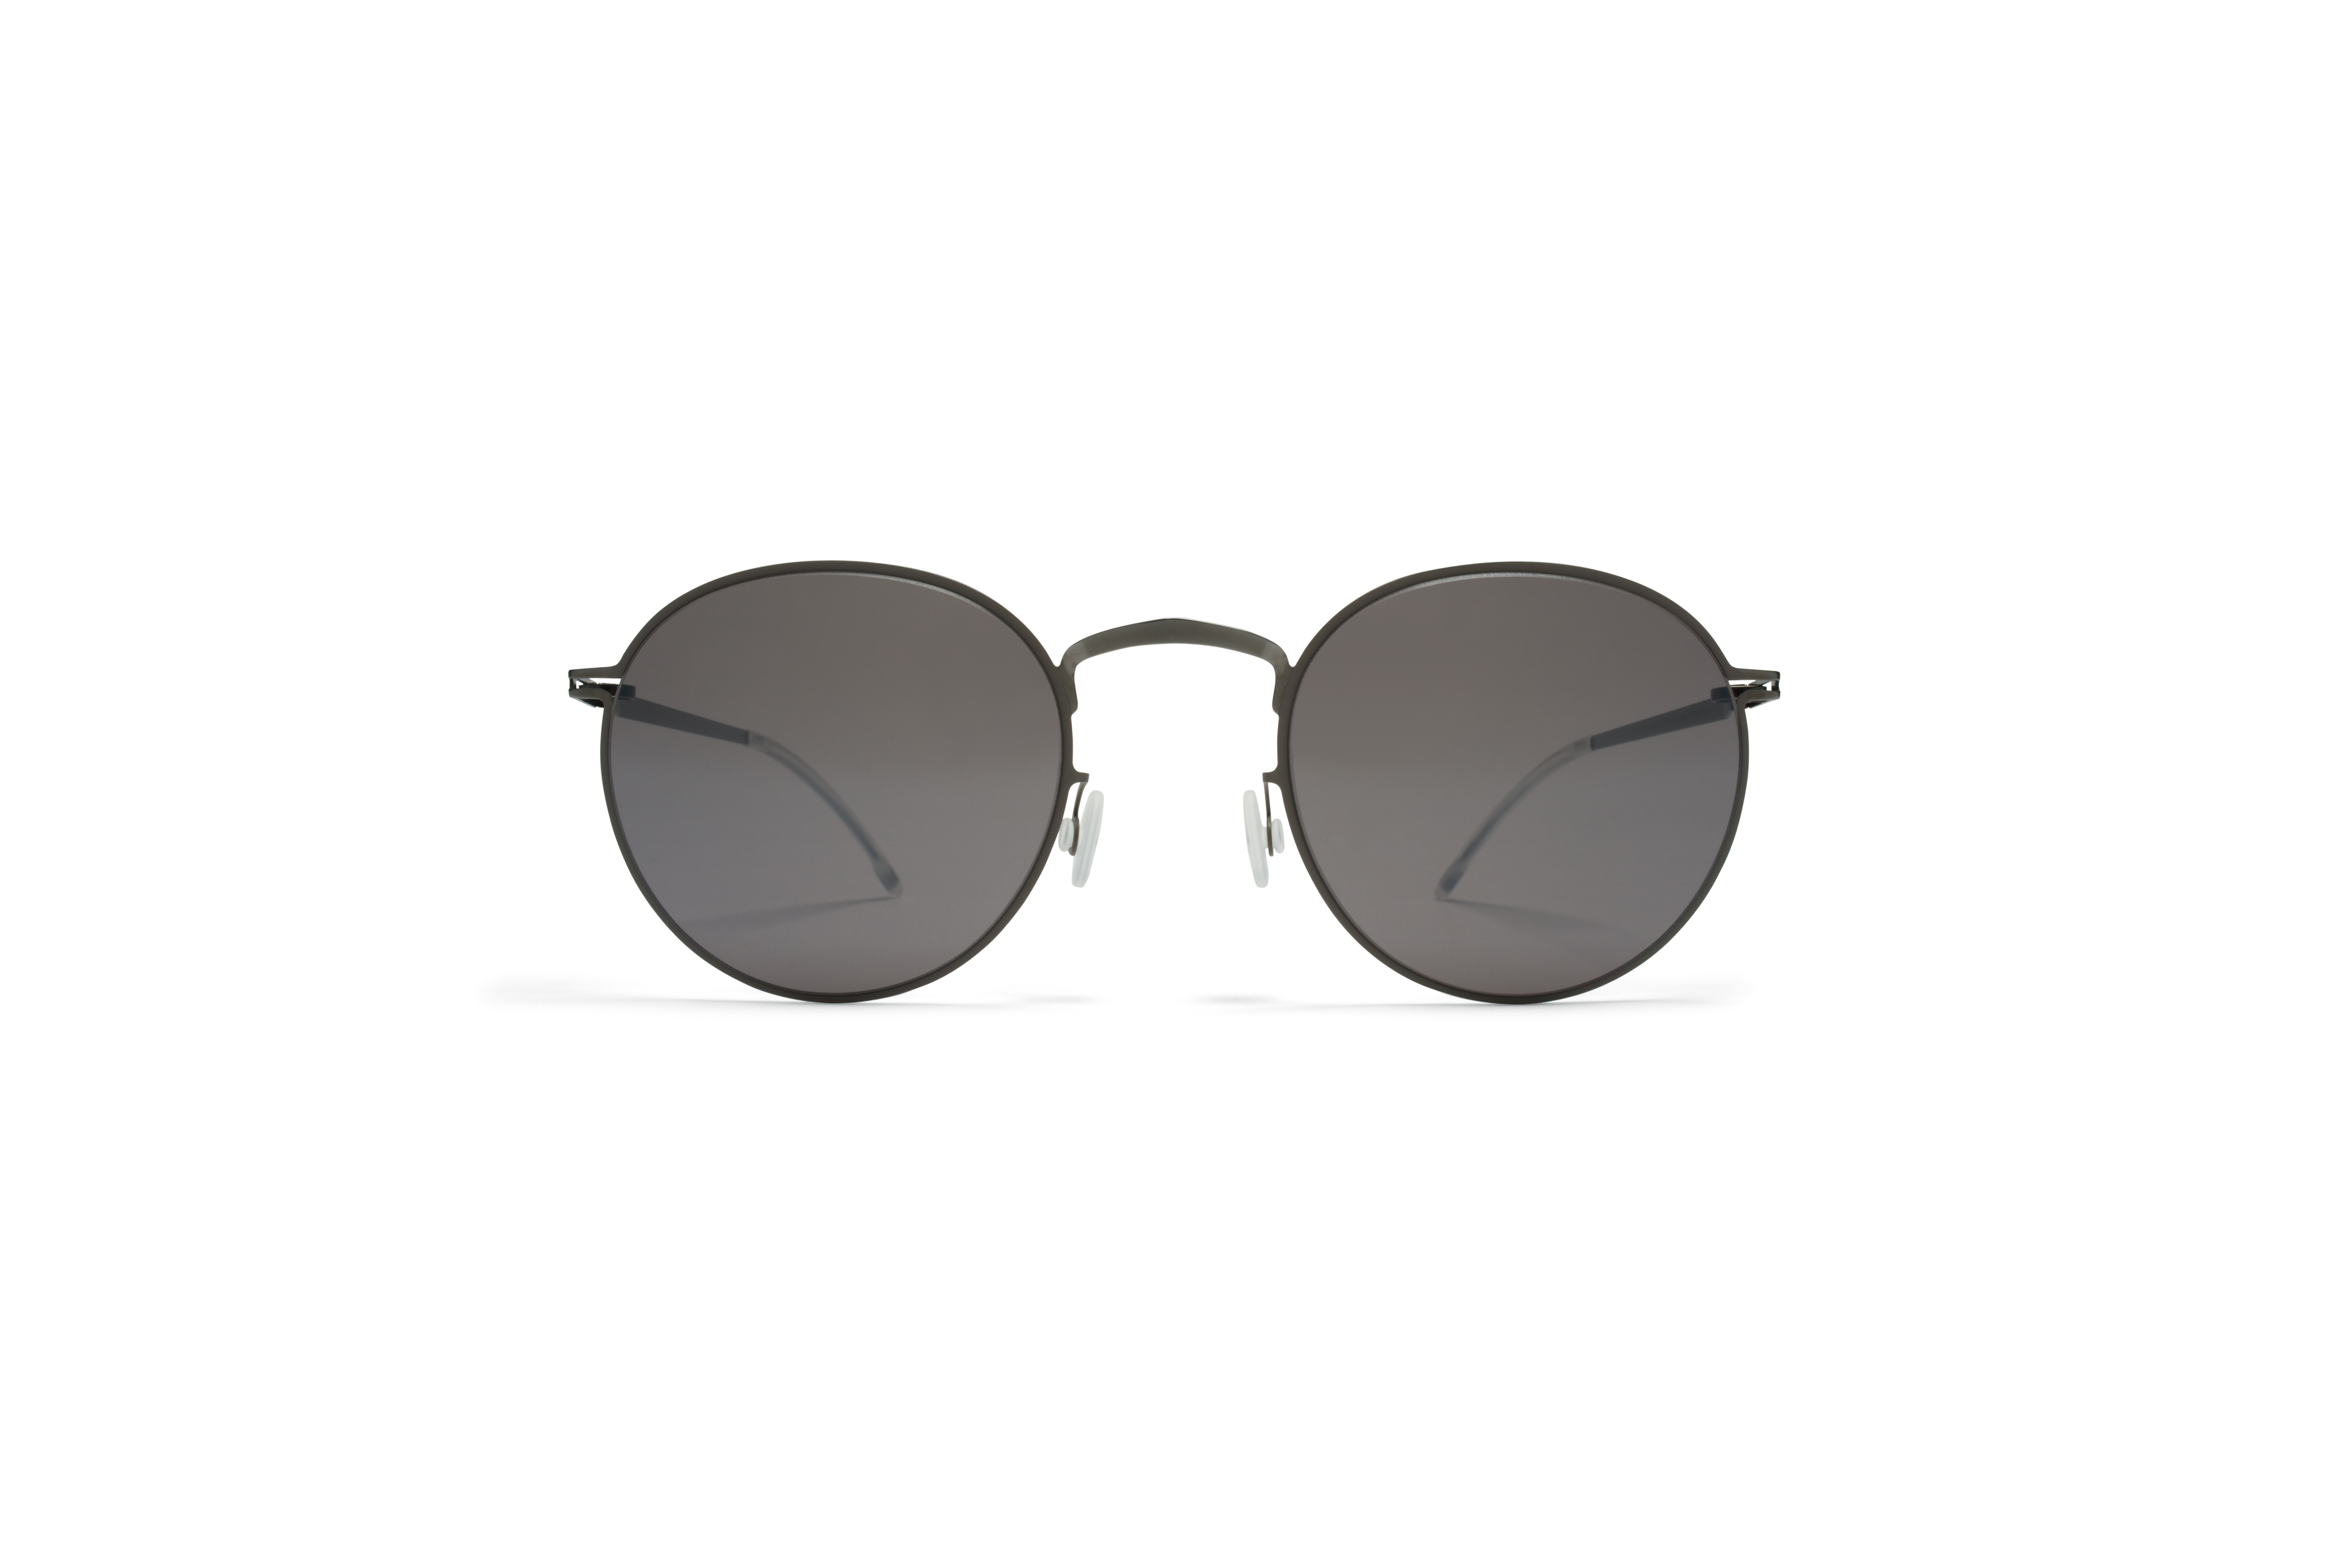 MYKITA Decades Sun Gianni Shinygraphite Molegrey D56bb1d4b51a5b